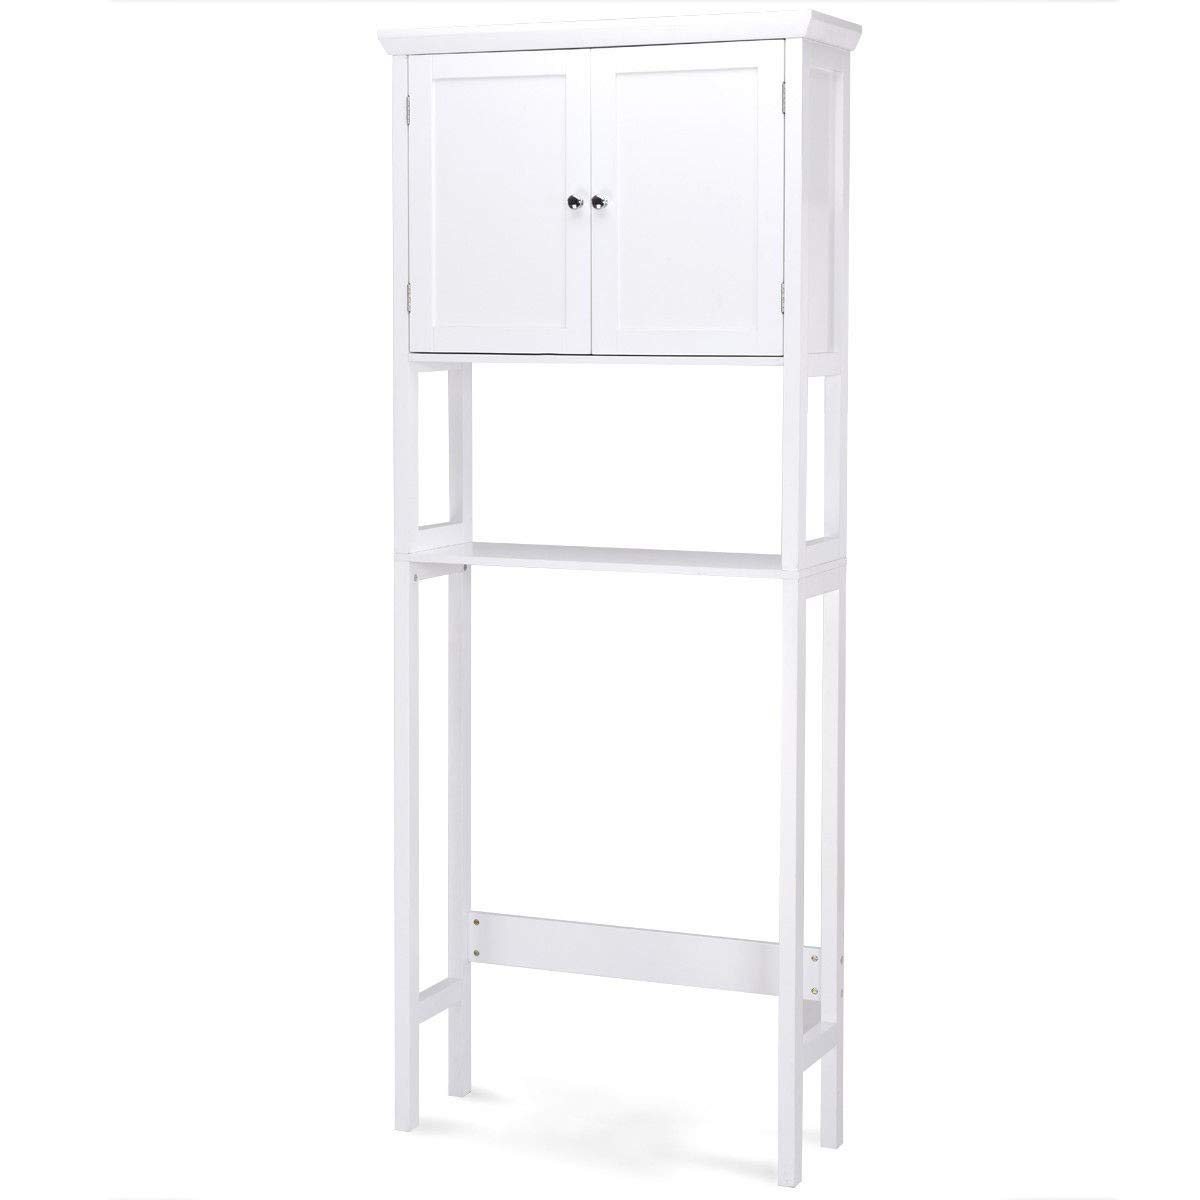 Giantex Over-The-Toilet Bathroom Storage Space Saver with Shelf Collect Cabinet, White (2 Door w/Open Rack)